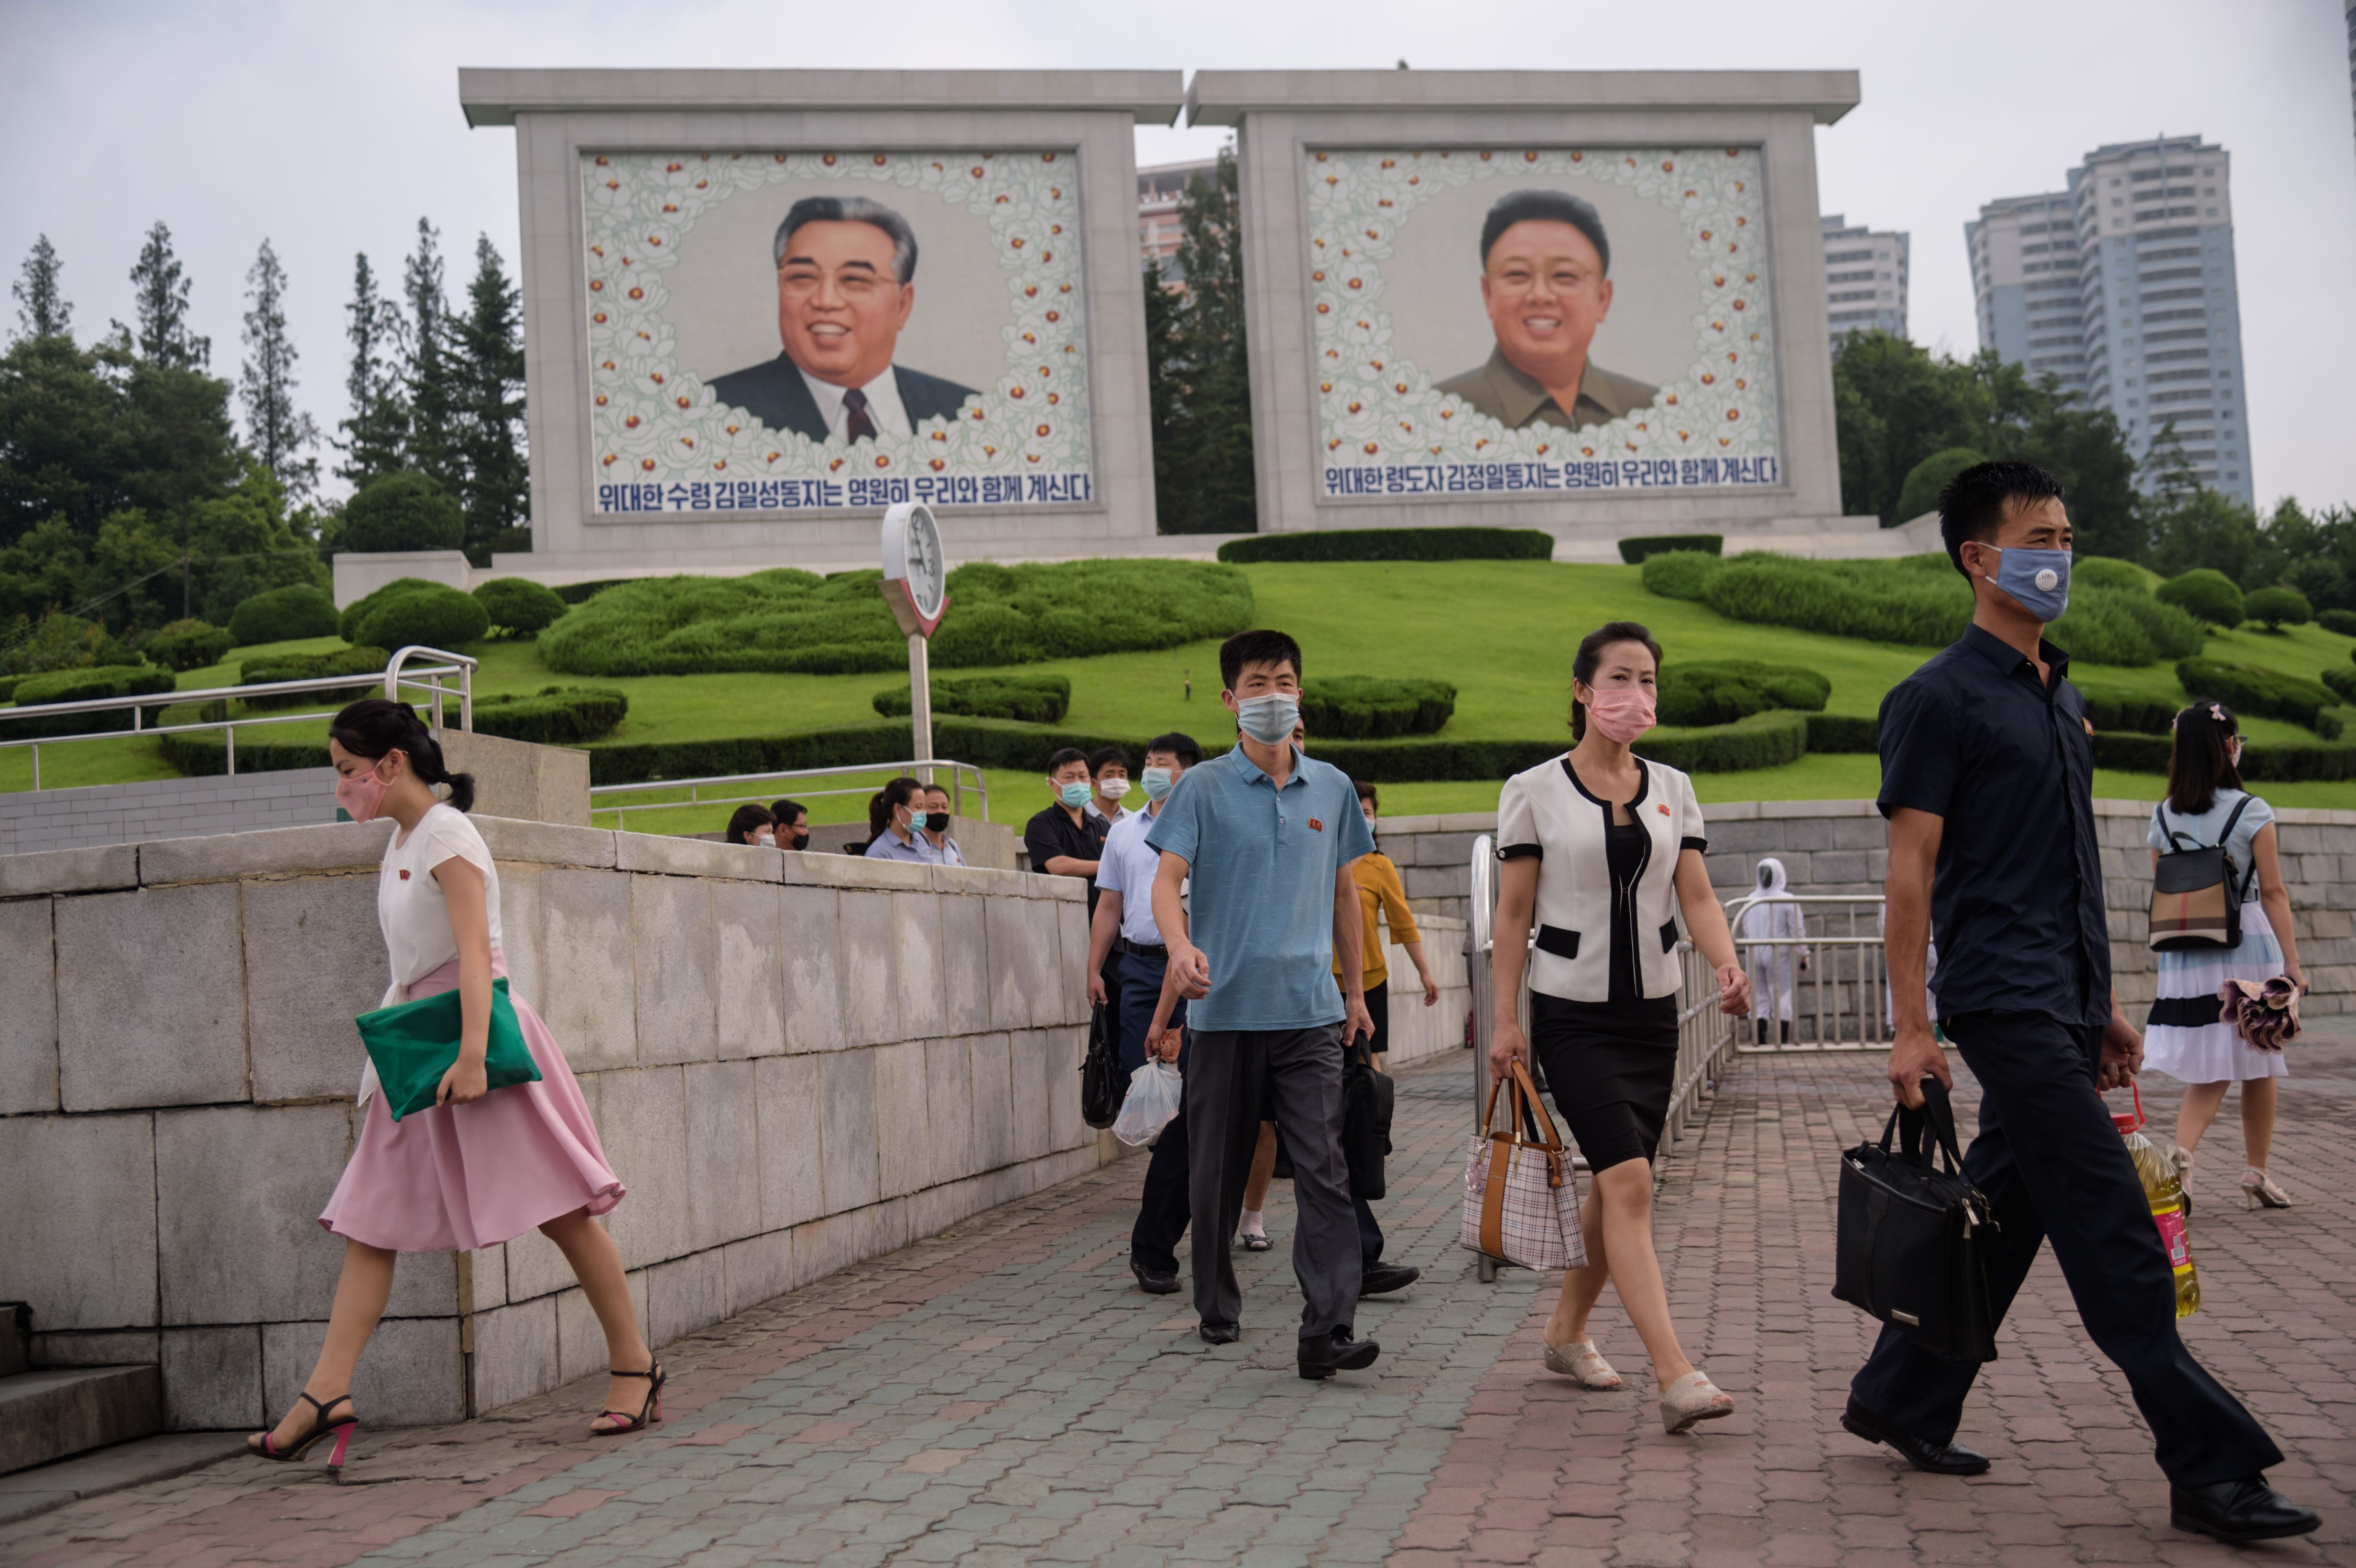 Pedestrians walk before the portraits of late North Korean leaders Kim Il Sung and Kim Jong Il, in central Pyongyang on August 19, 2020. (Photo by KIM Won Jin / AFP) (Photo by KIM WON JIN/AFP via Getty Images)